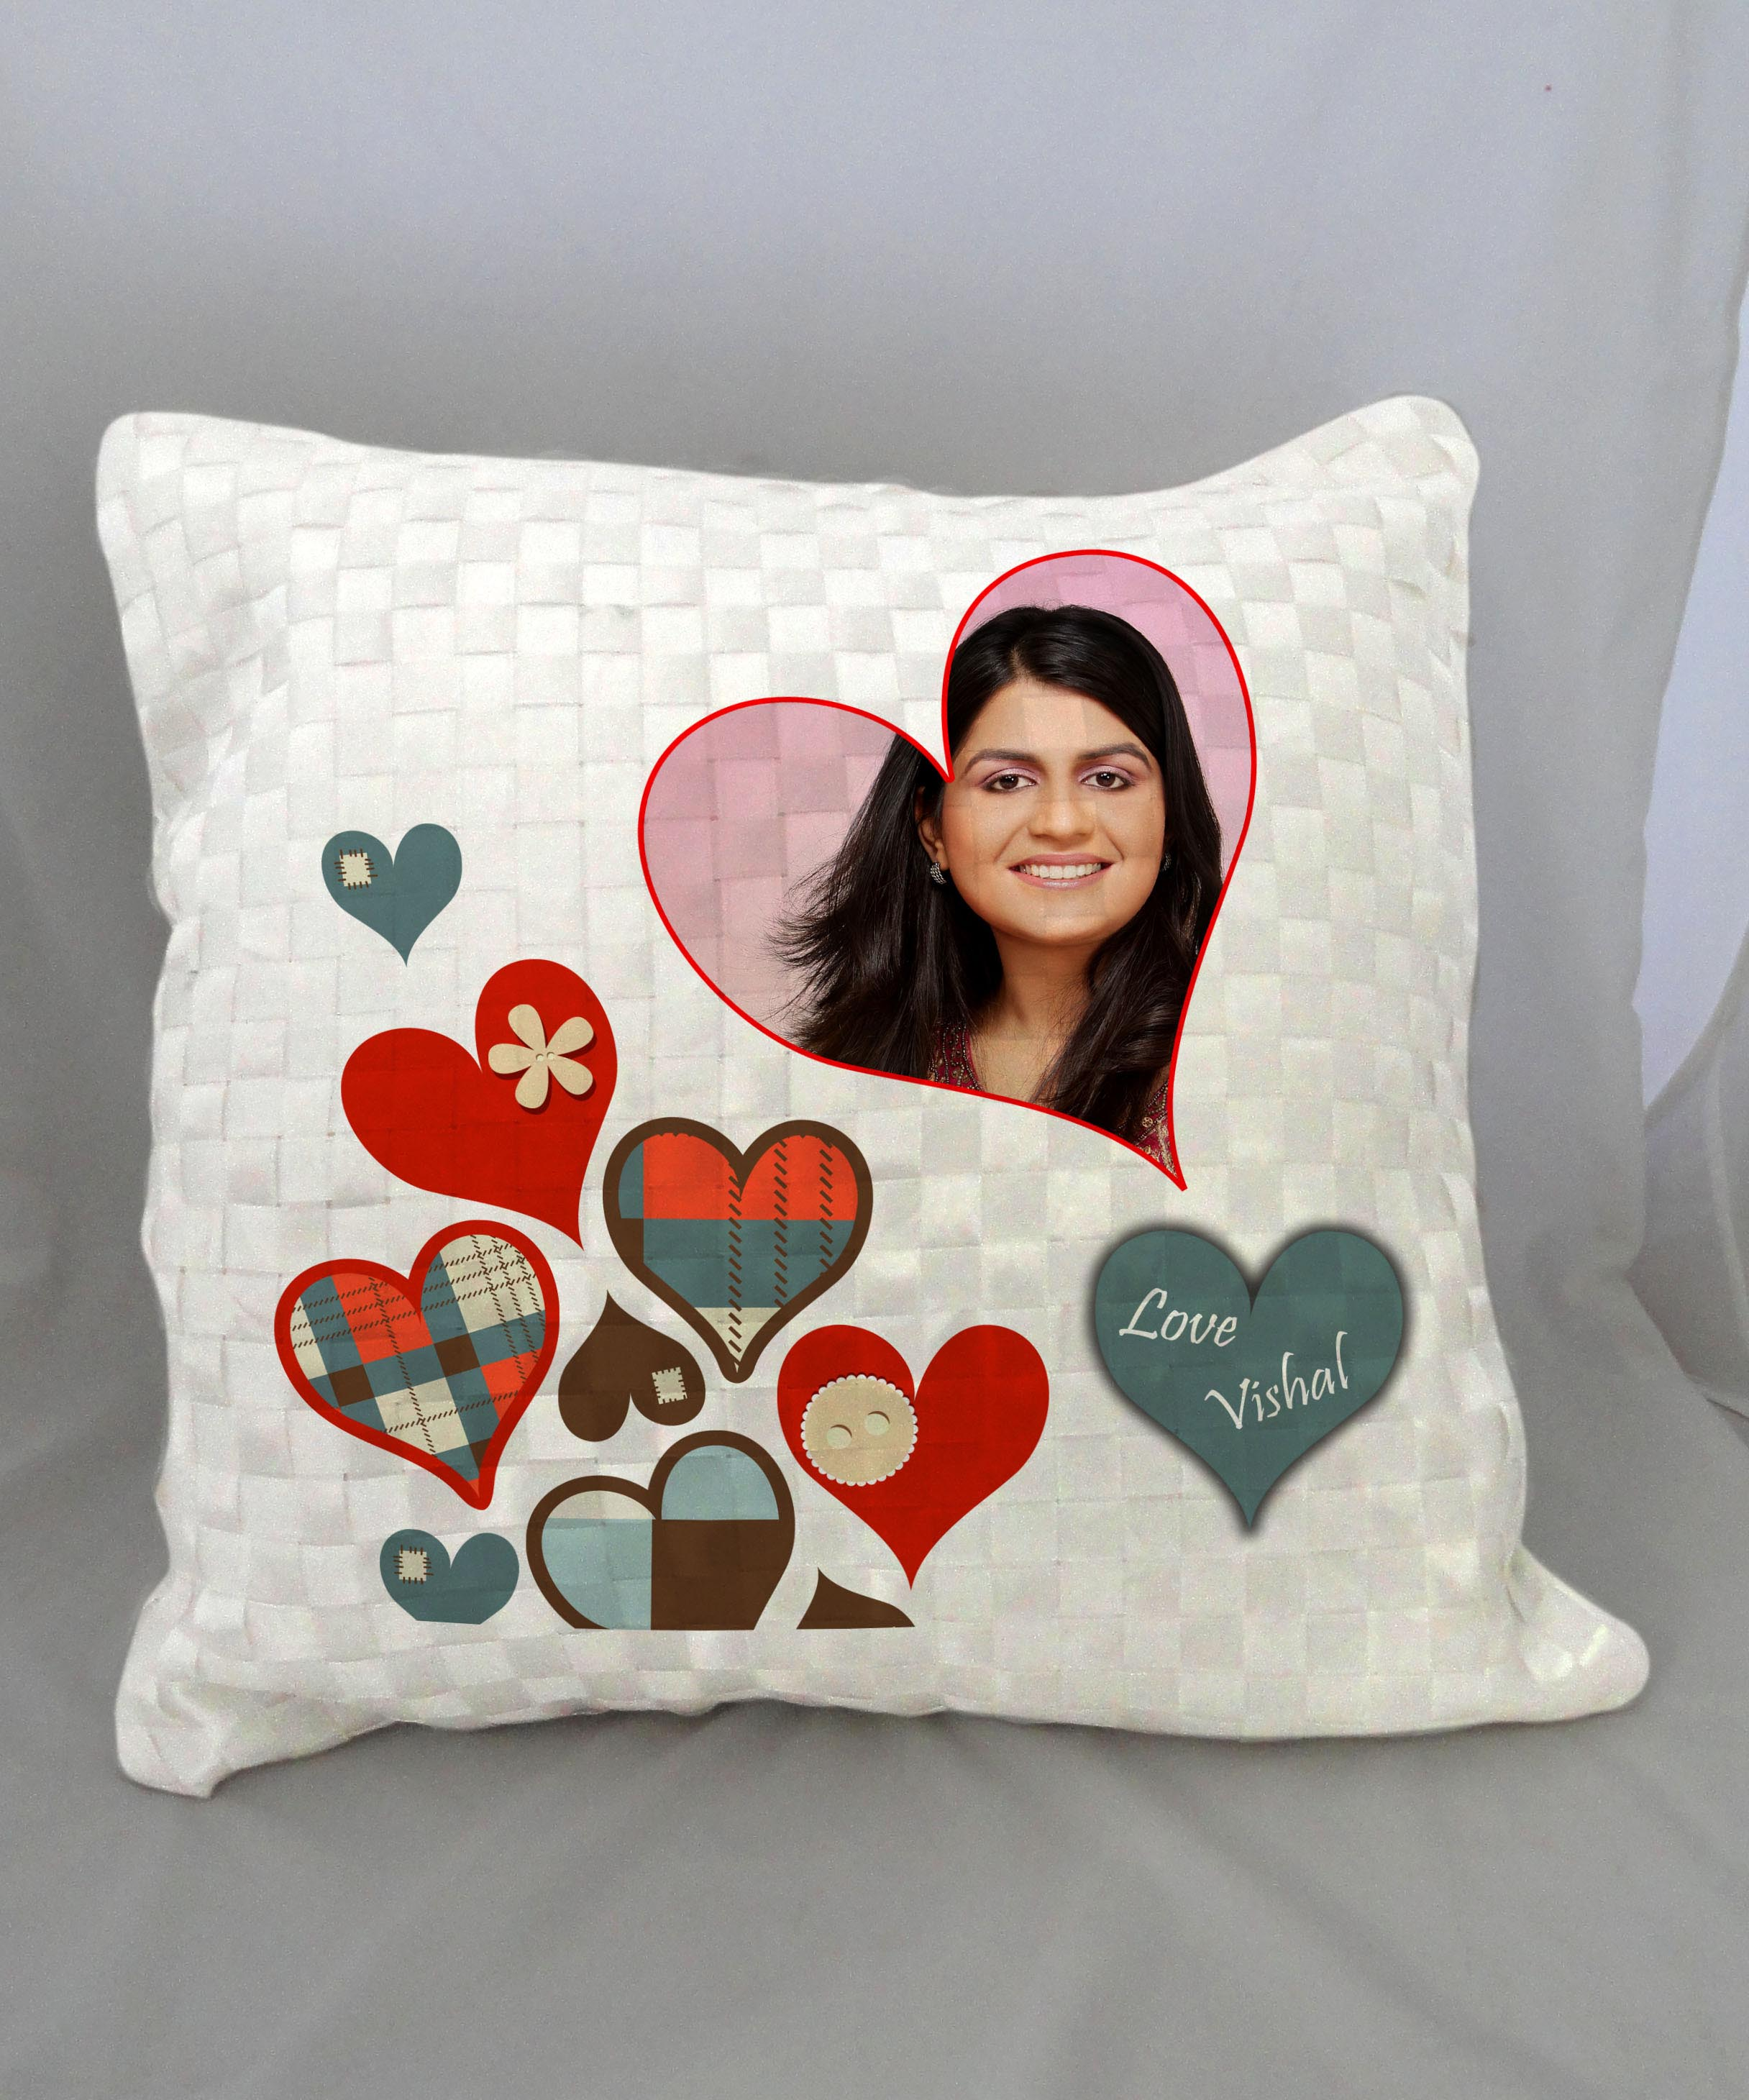 Photo Printed Pillows